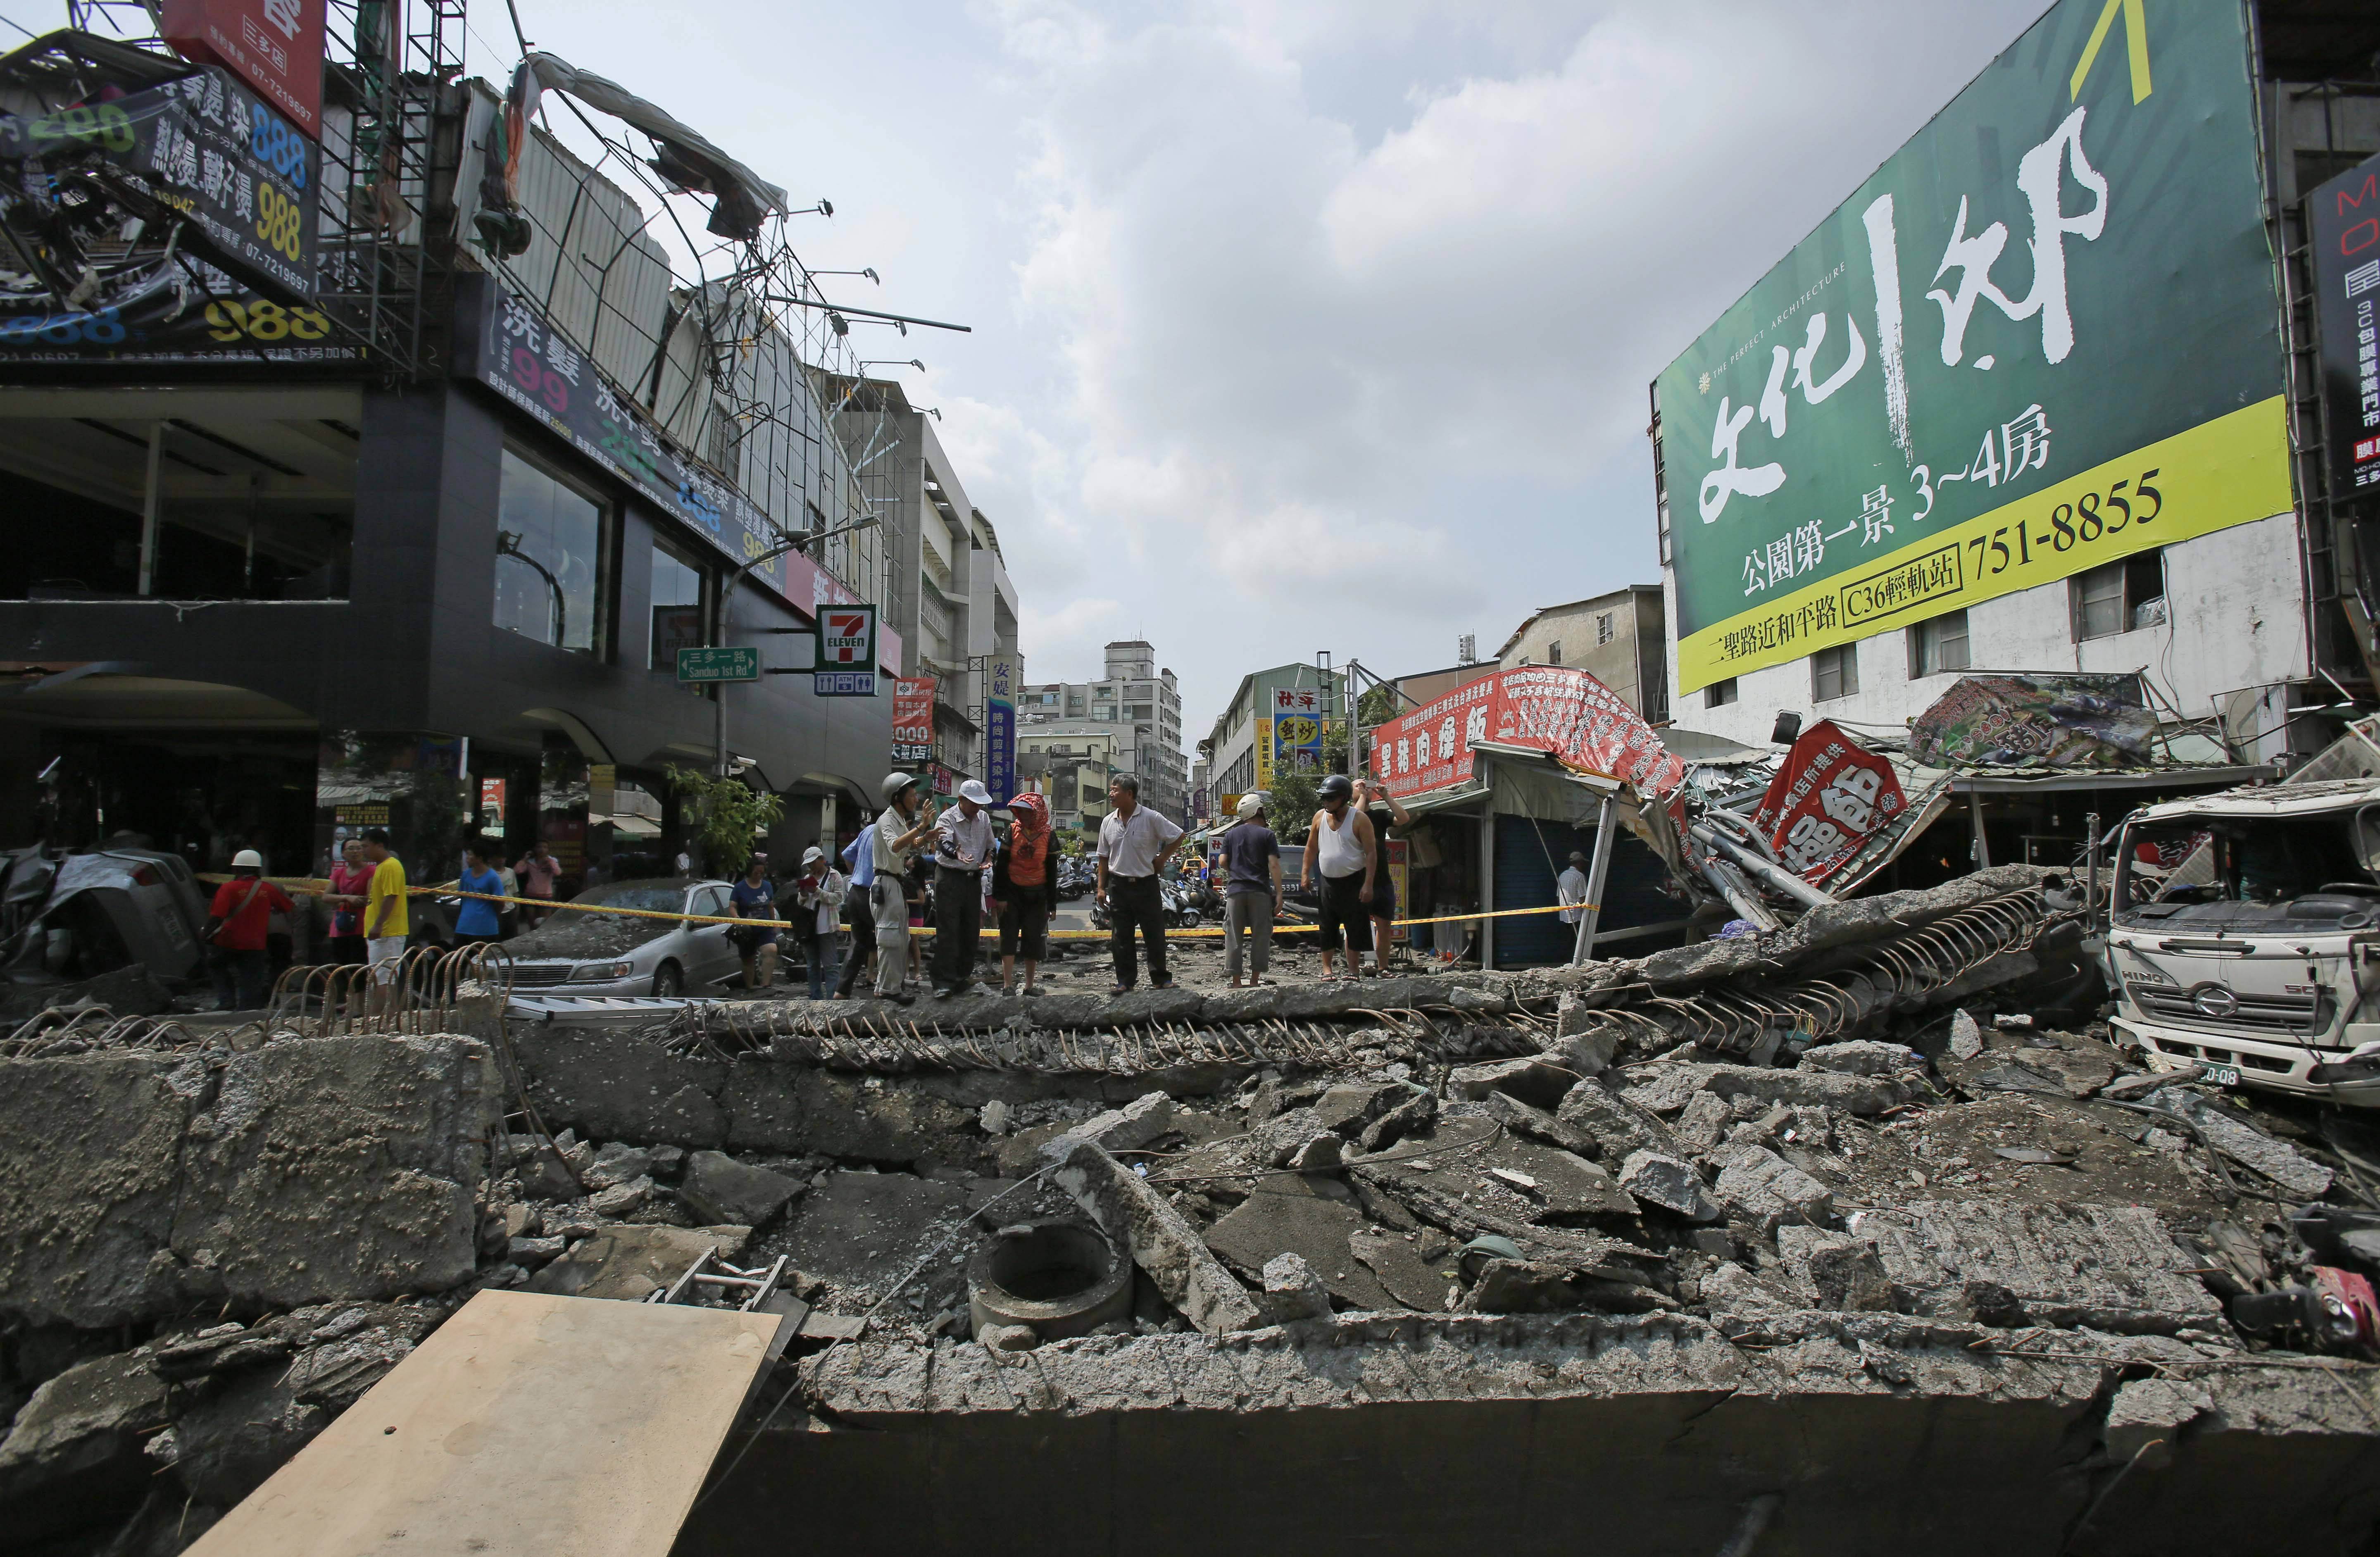 Locals survey the damage from a massive gas explosion in Kaohsiung, Taiwan, Friday, Aug. 1, 2014.